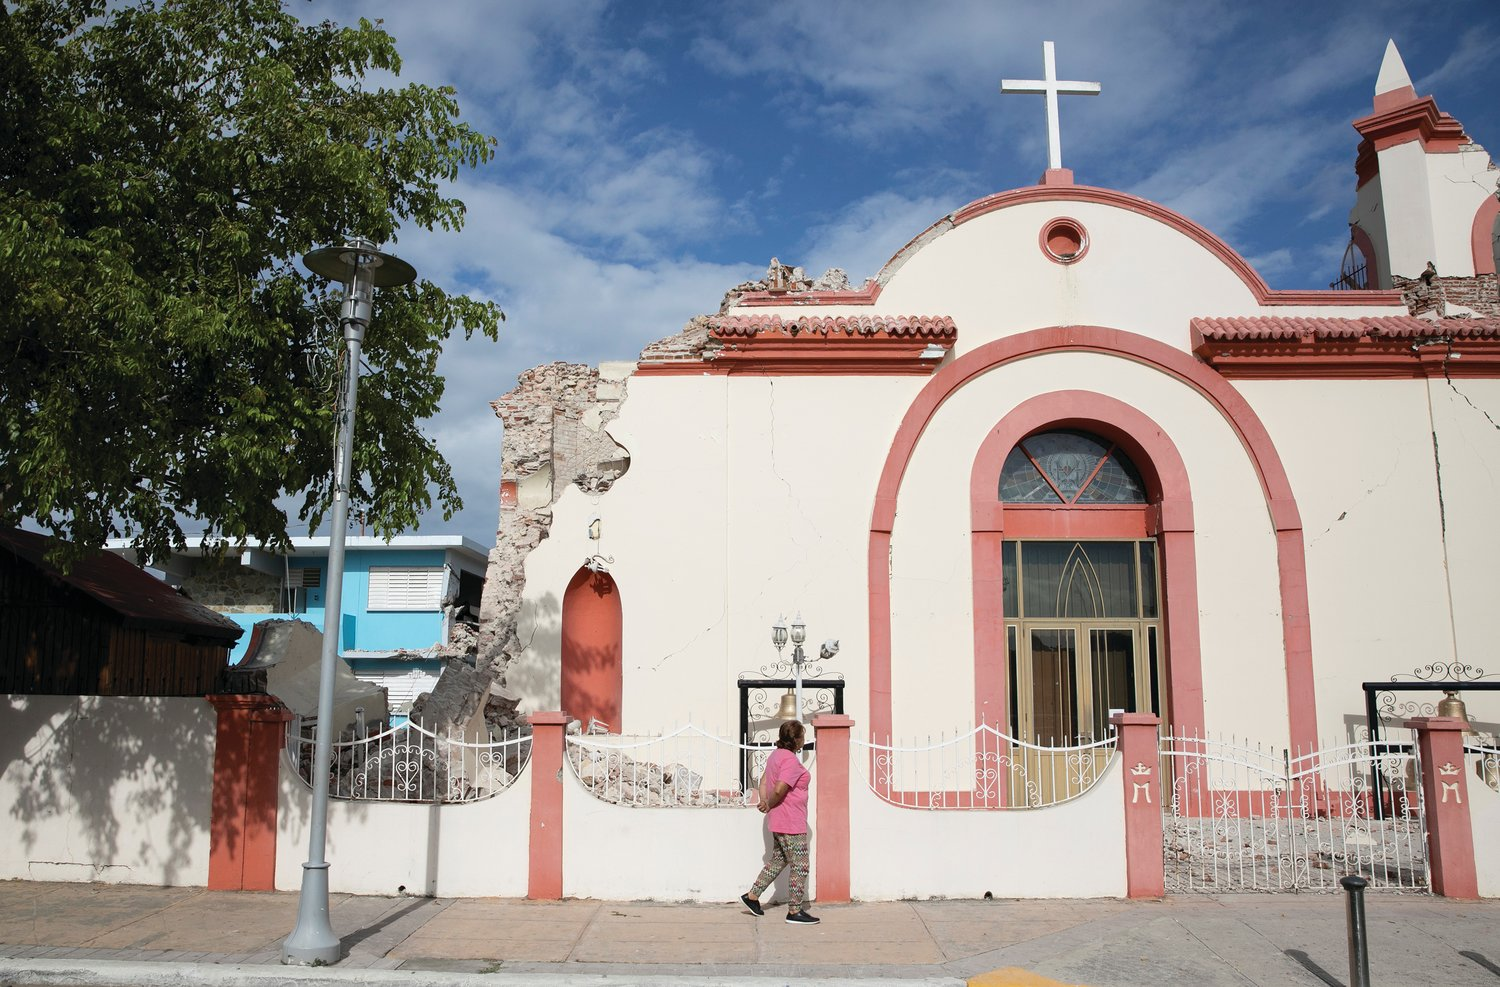 DEVASTATION—A woman in Guayanilla, Puerto Rico, walks in front of the damaged Immaculate Conception Church Jan. 9 after an earthquake struck the area two days earlier.